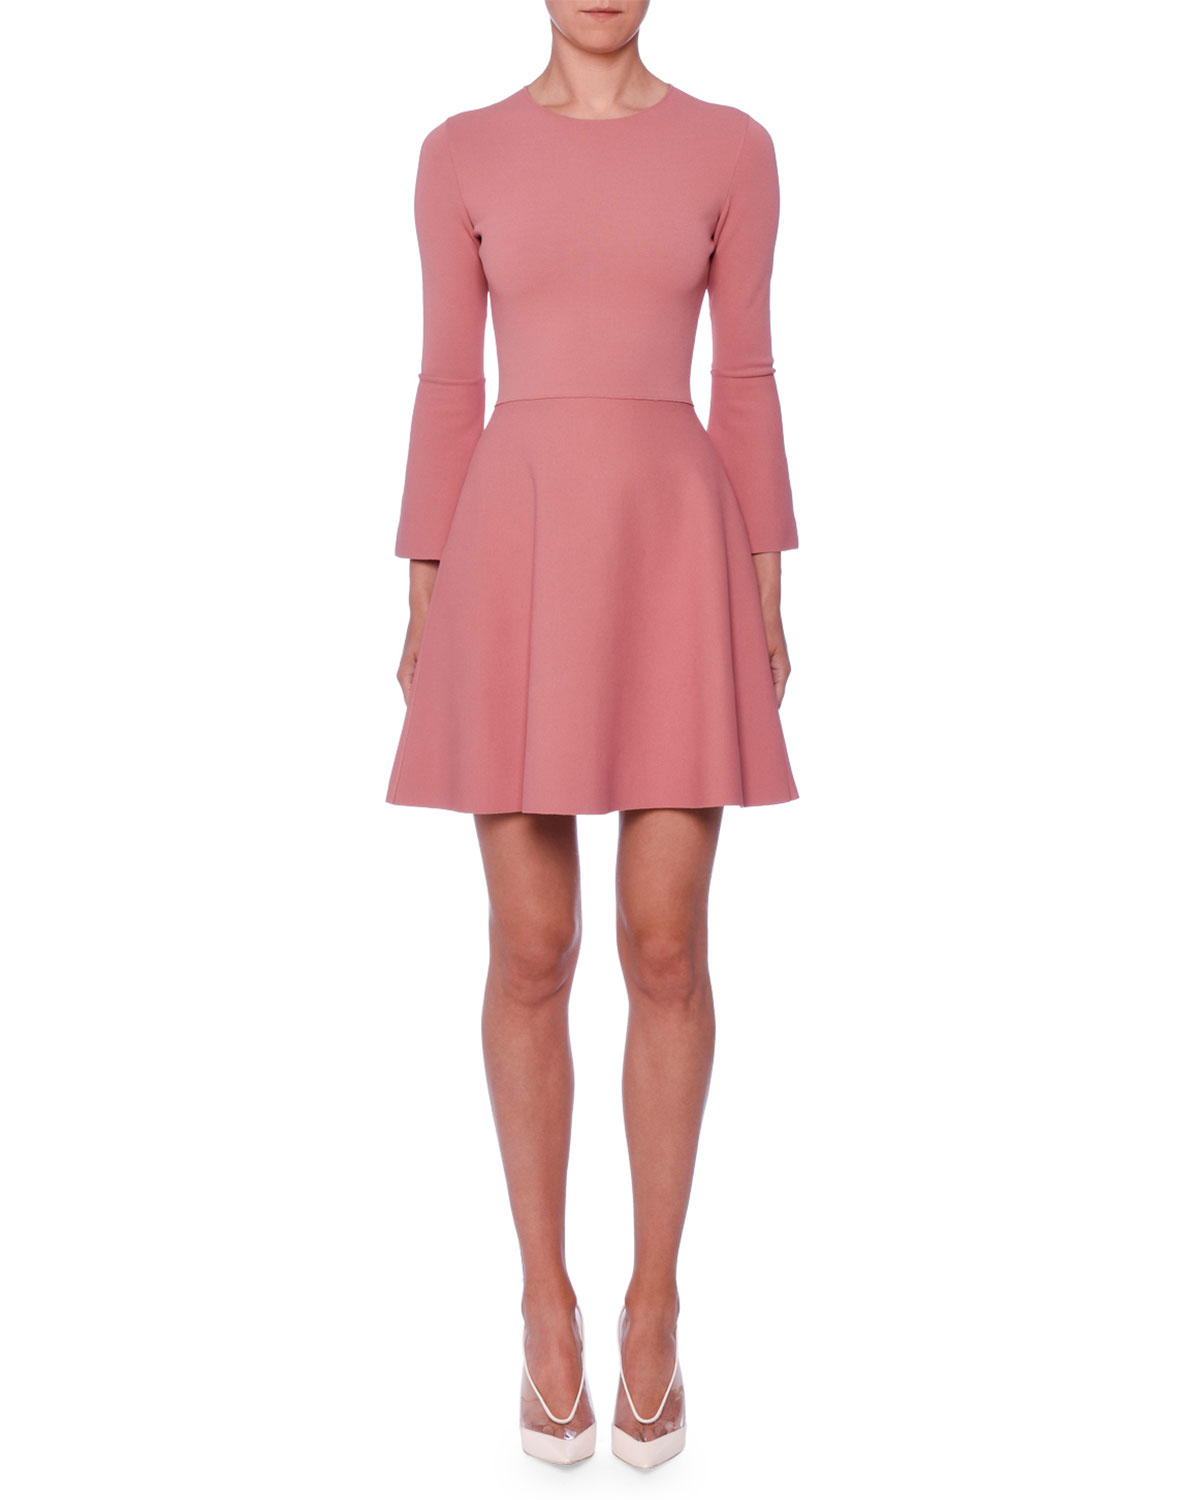 24b0c7042ee3 Stella McCartney Bell-Sleeve Fit-and-Flare Short Dress | Neiman Marcus